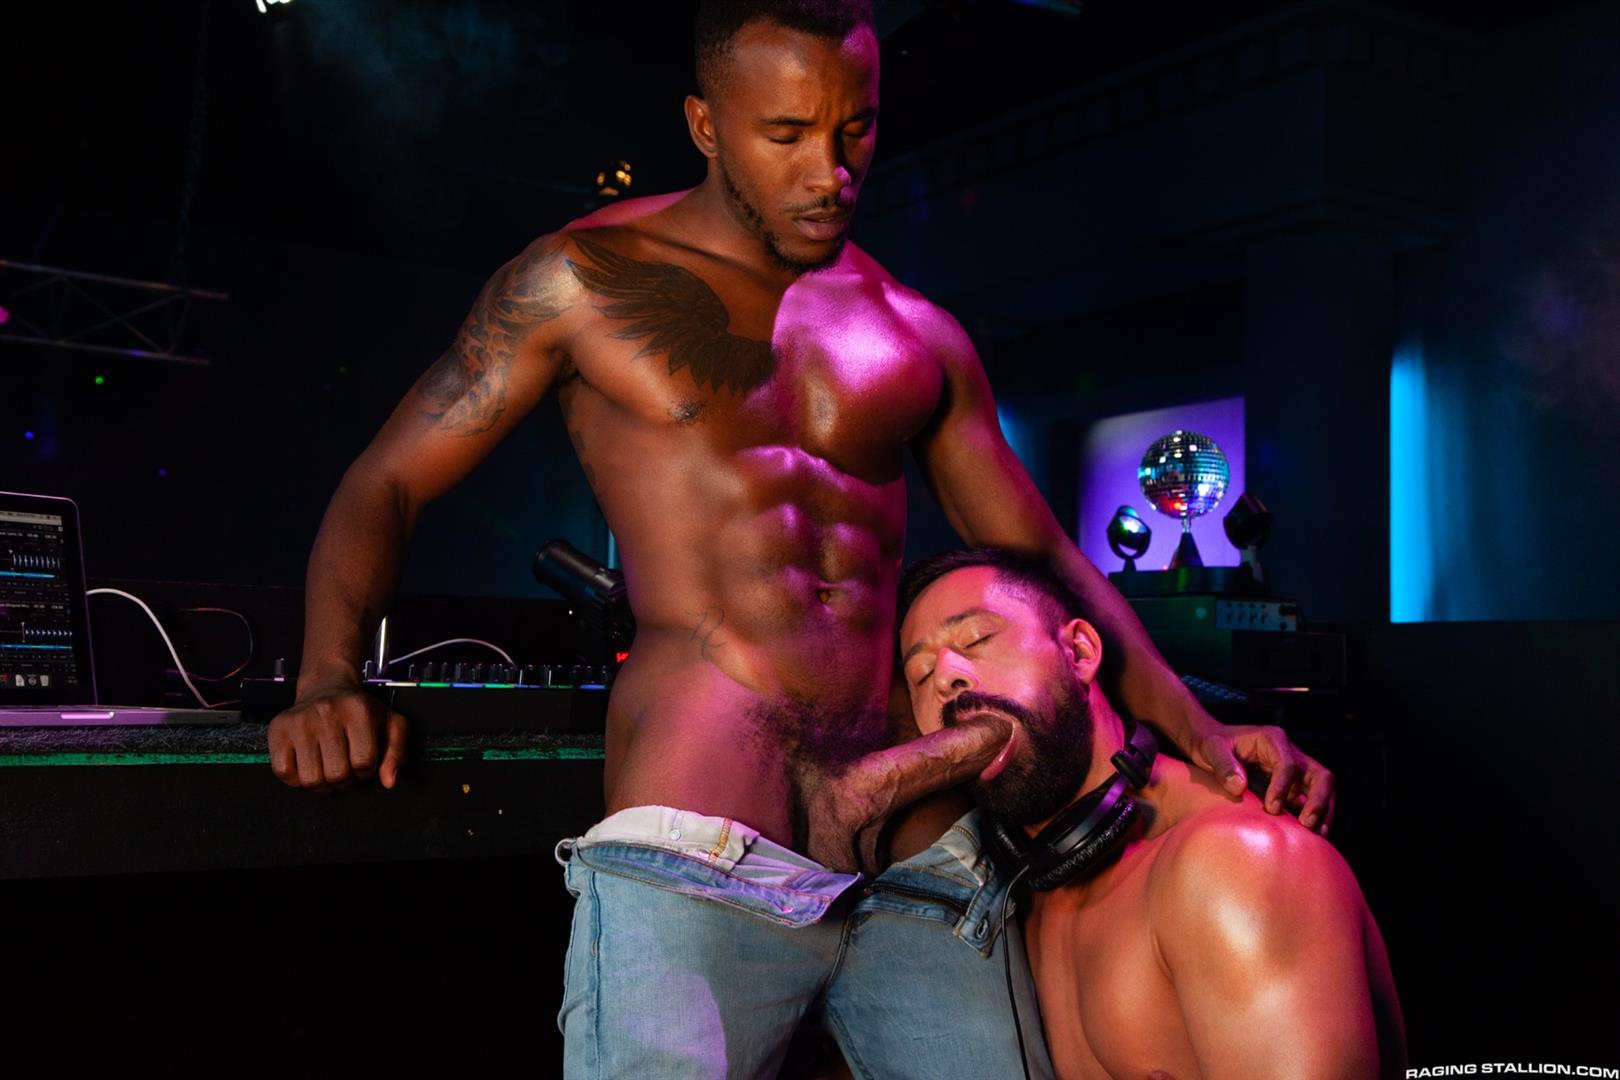 Raging-Stallion-Pheonix-Fellington-and-Cristian-Sam-Big-Black-Cocksucking-Video-13 Getting My Big Black Cock Sucked In The DJ Booth